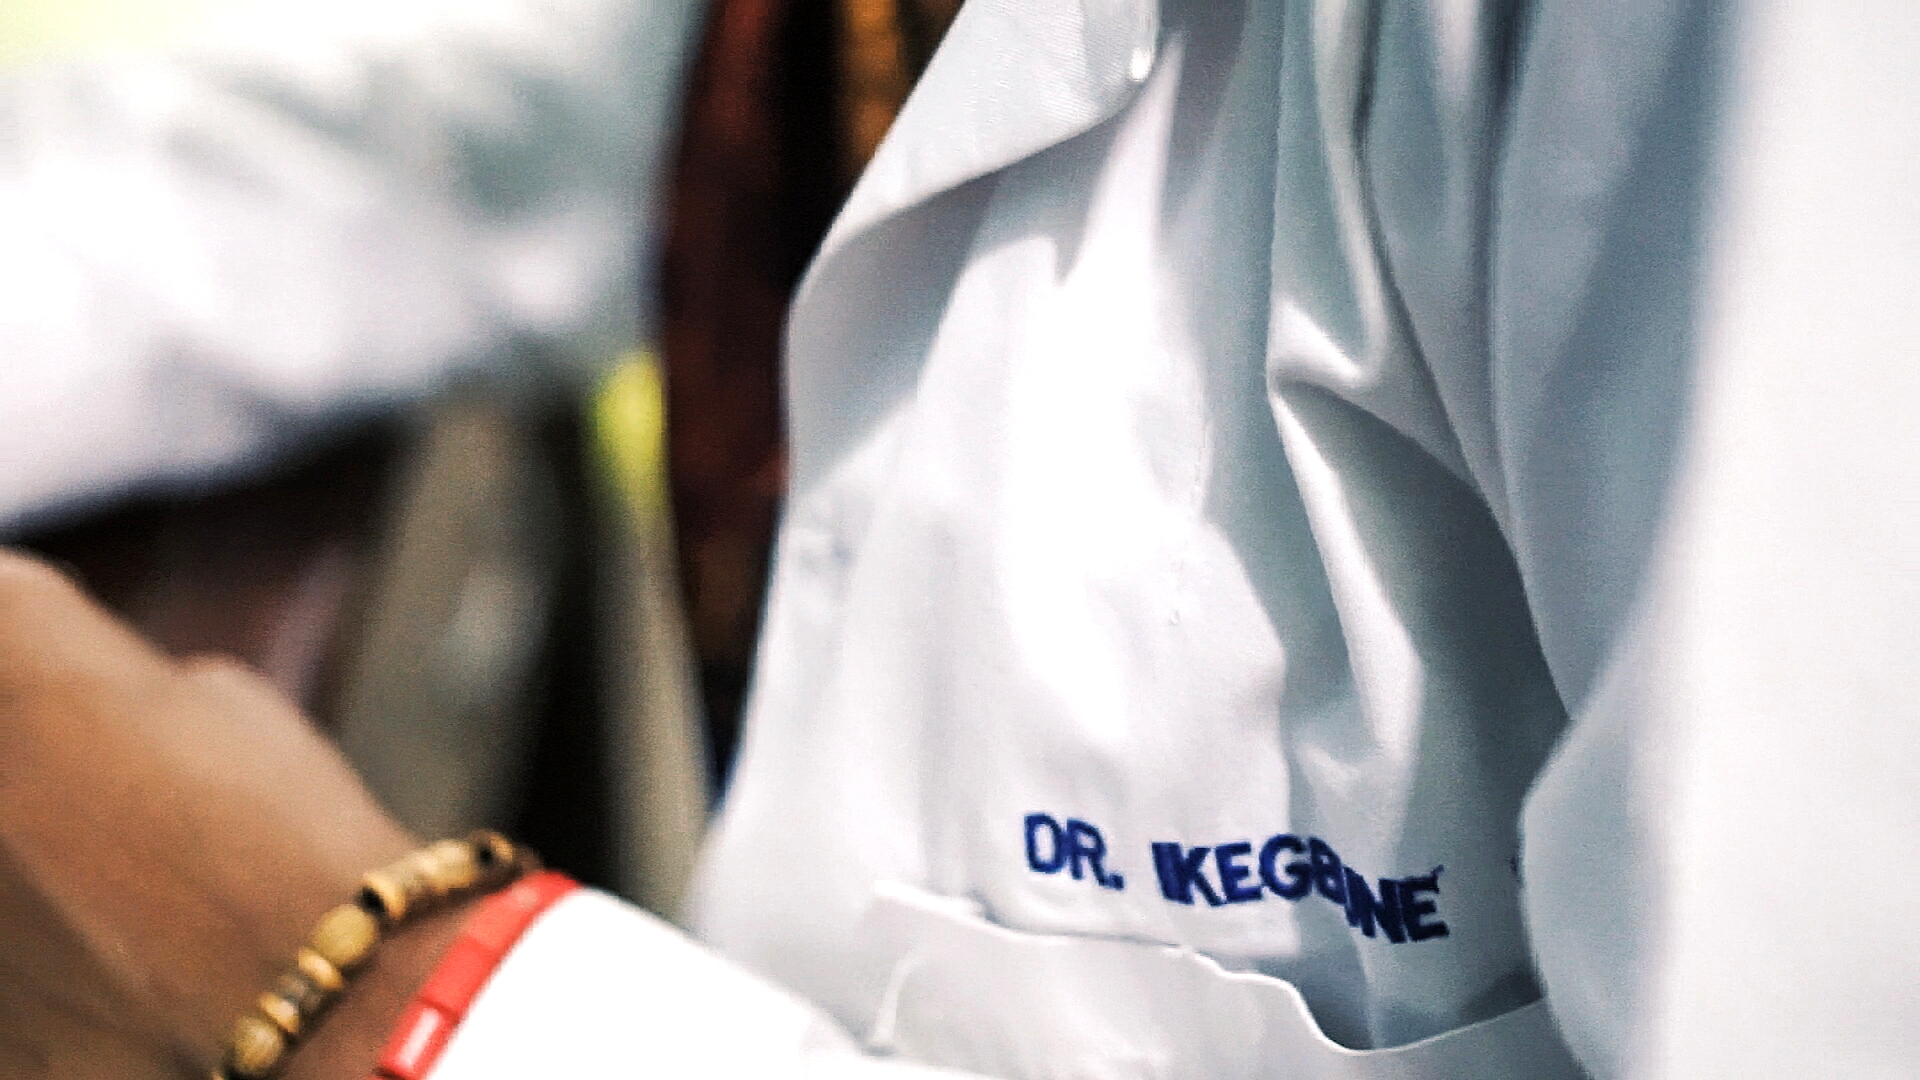 Housemanship in Nigeria - Nigerian medical doctor and blogger Cassie daves